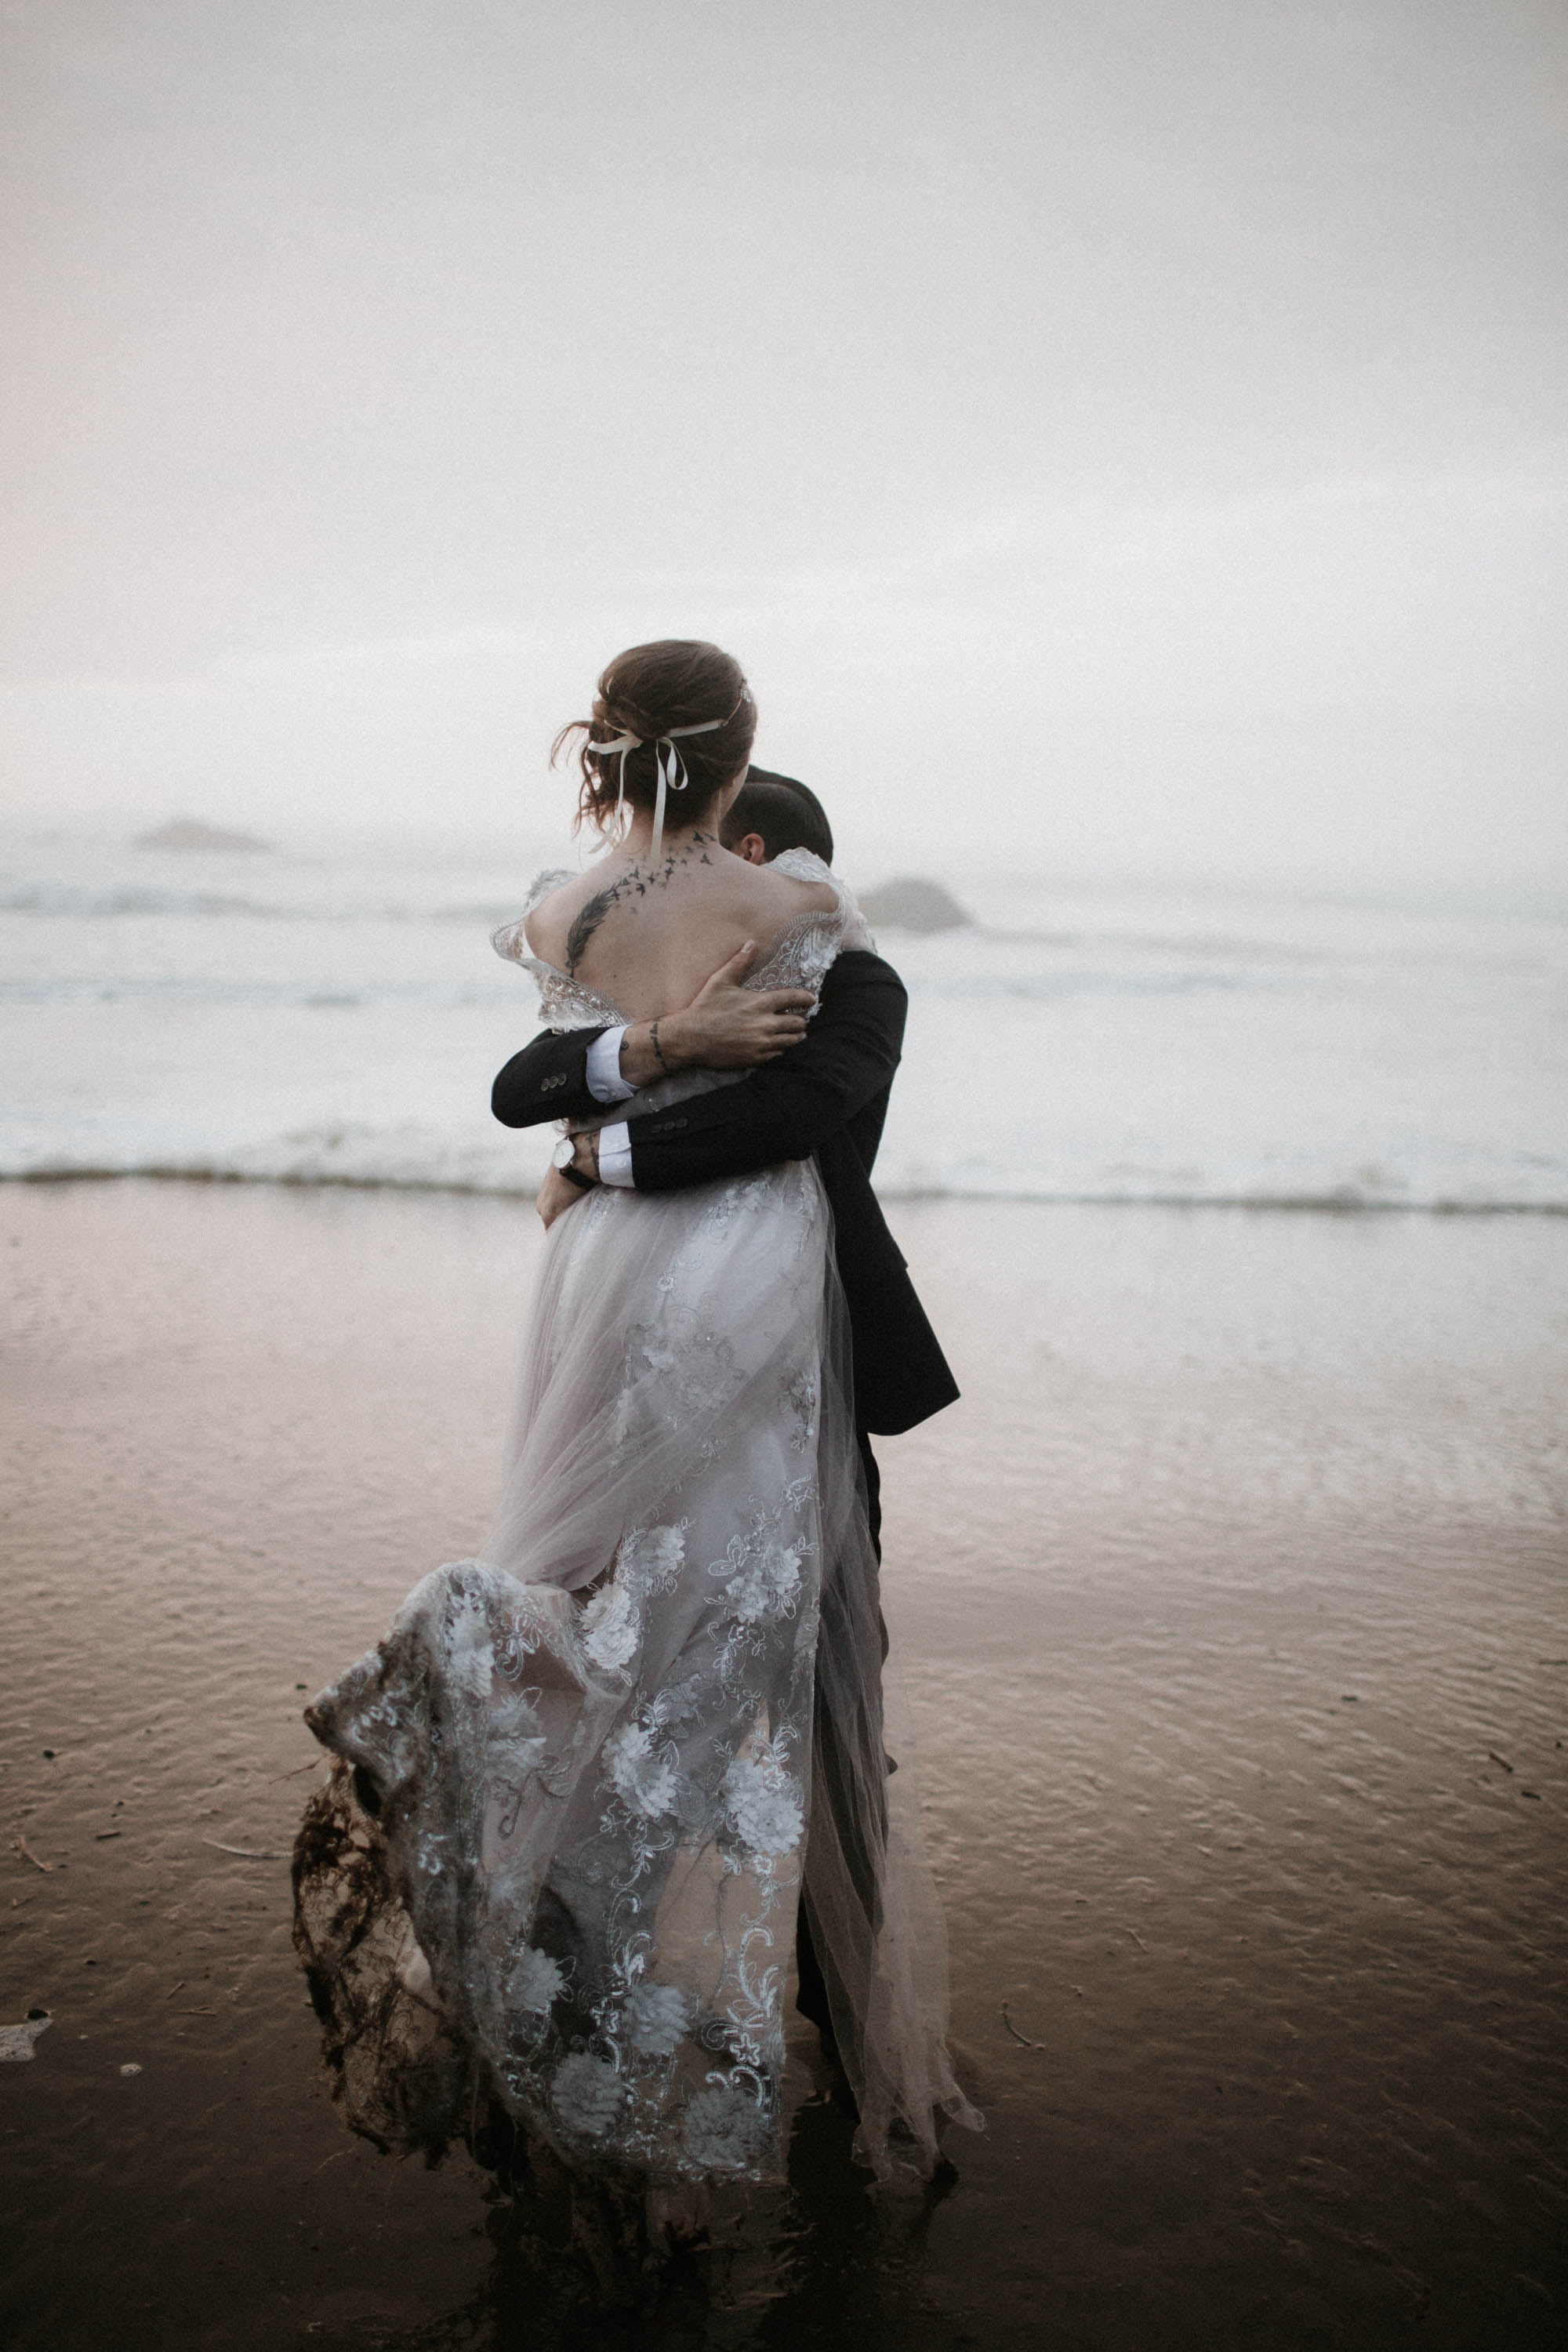 canonbeach_elopment_weddingphotographer-71.jpg